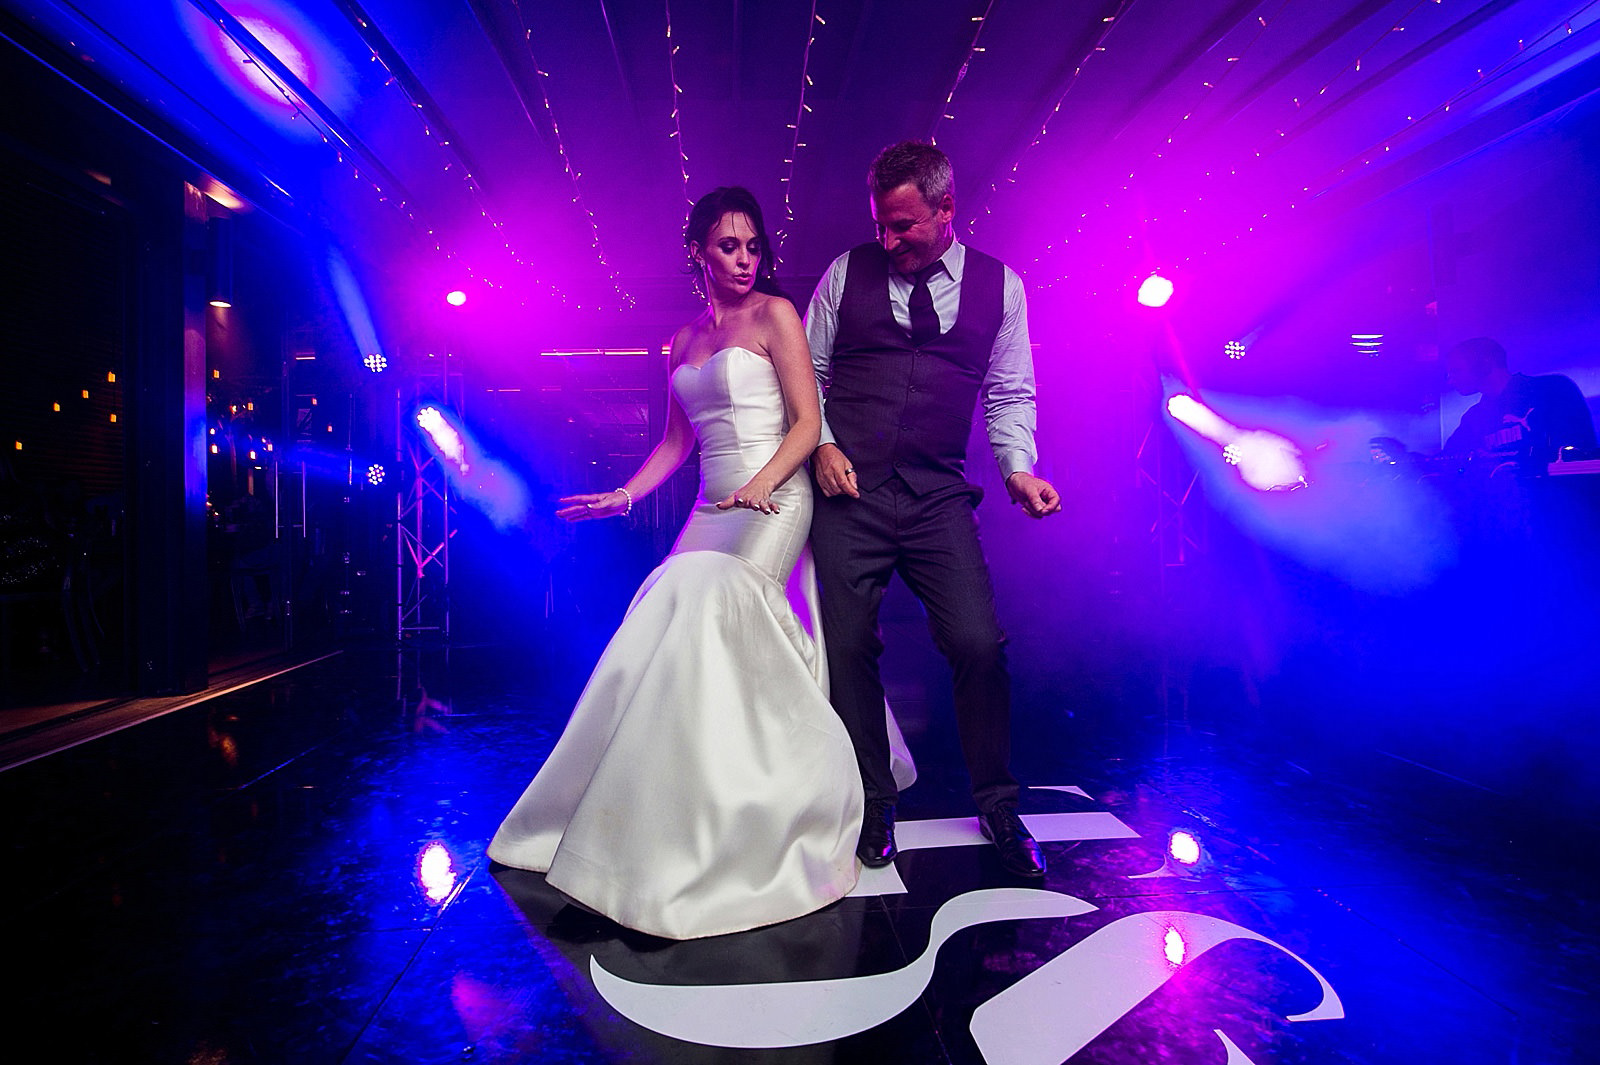 Documentary wedding photography at Bosjes wedding venue, shot by top South African wedding photographer Jacki Bruniquel